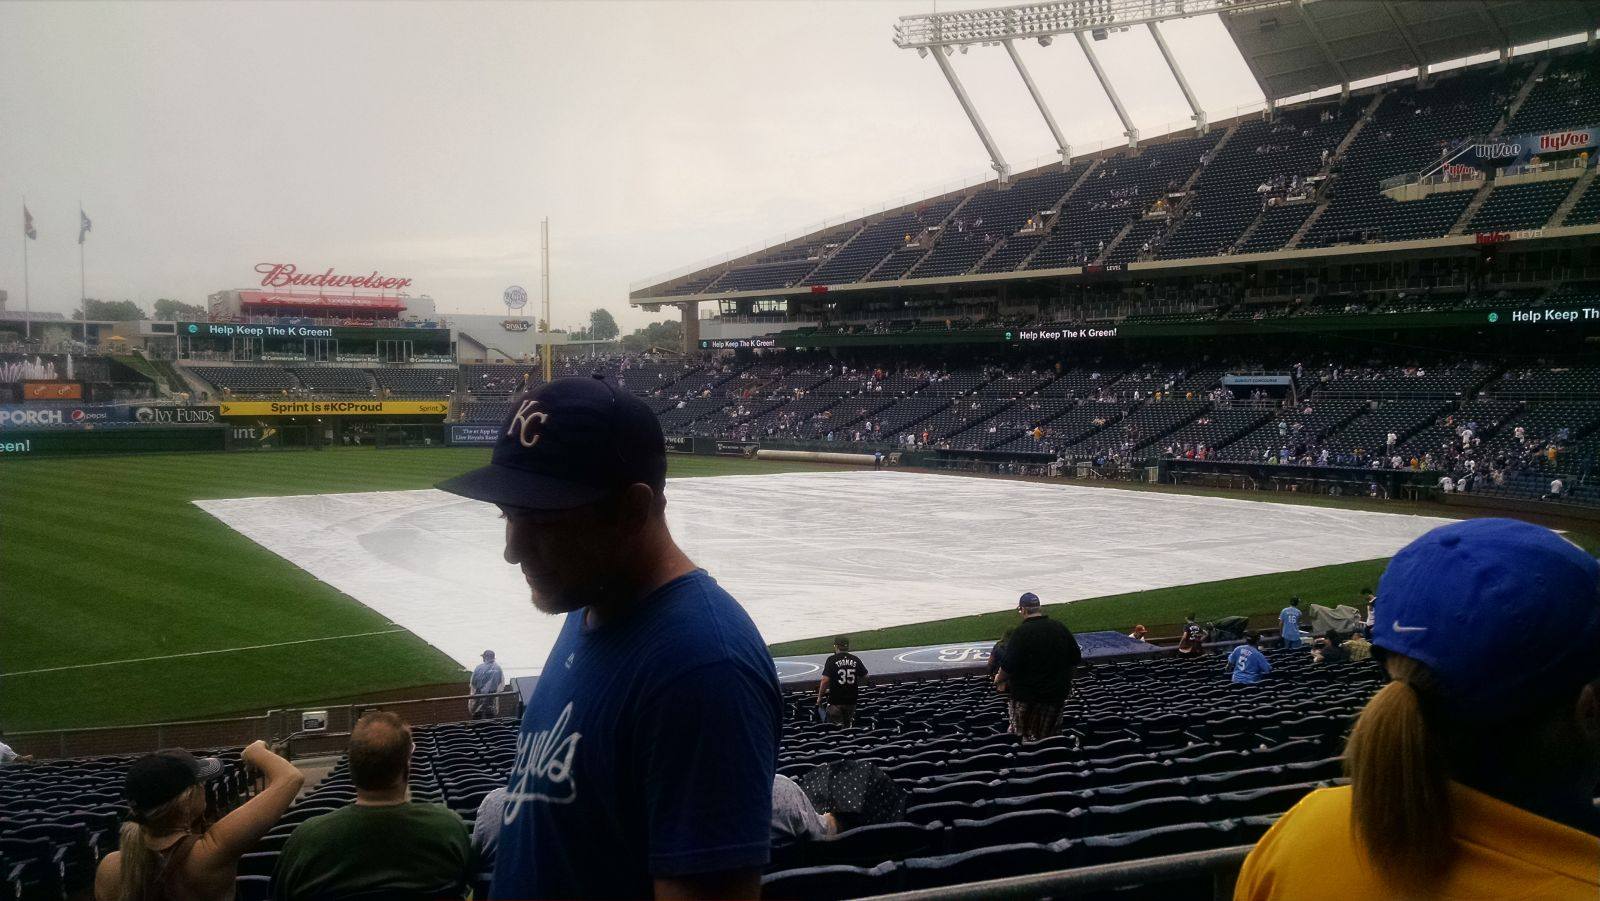 Kauffman Stadium : Row AA